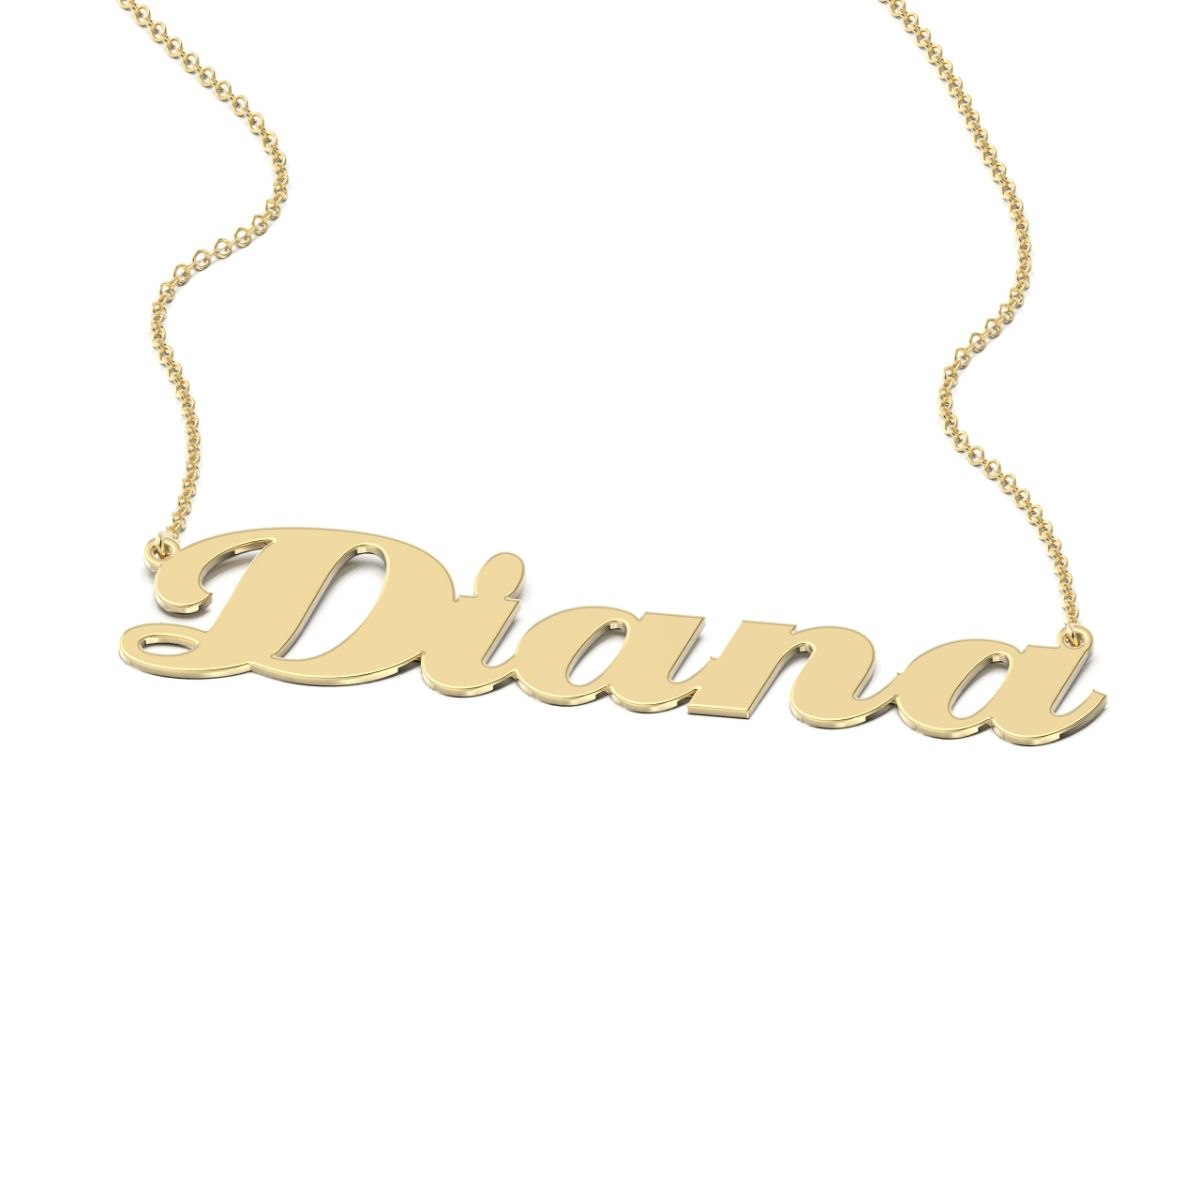 Eclat Style Name Necklace